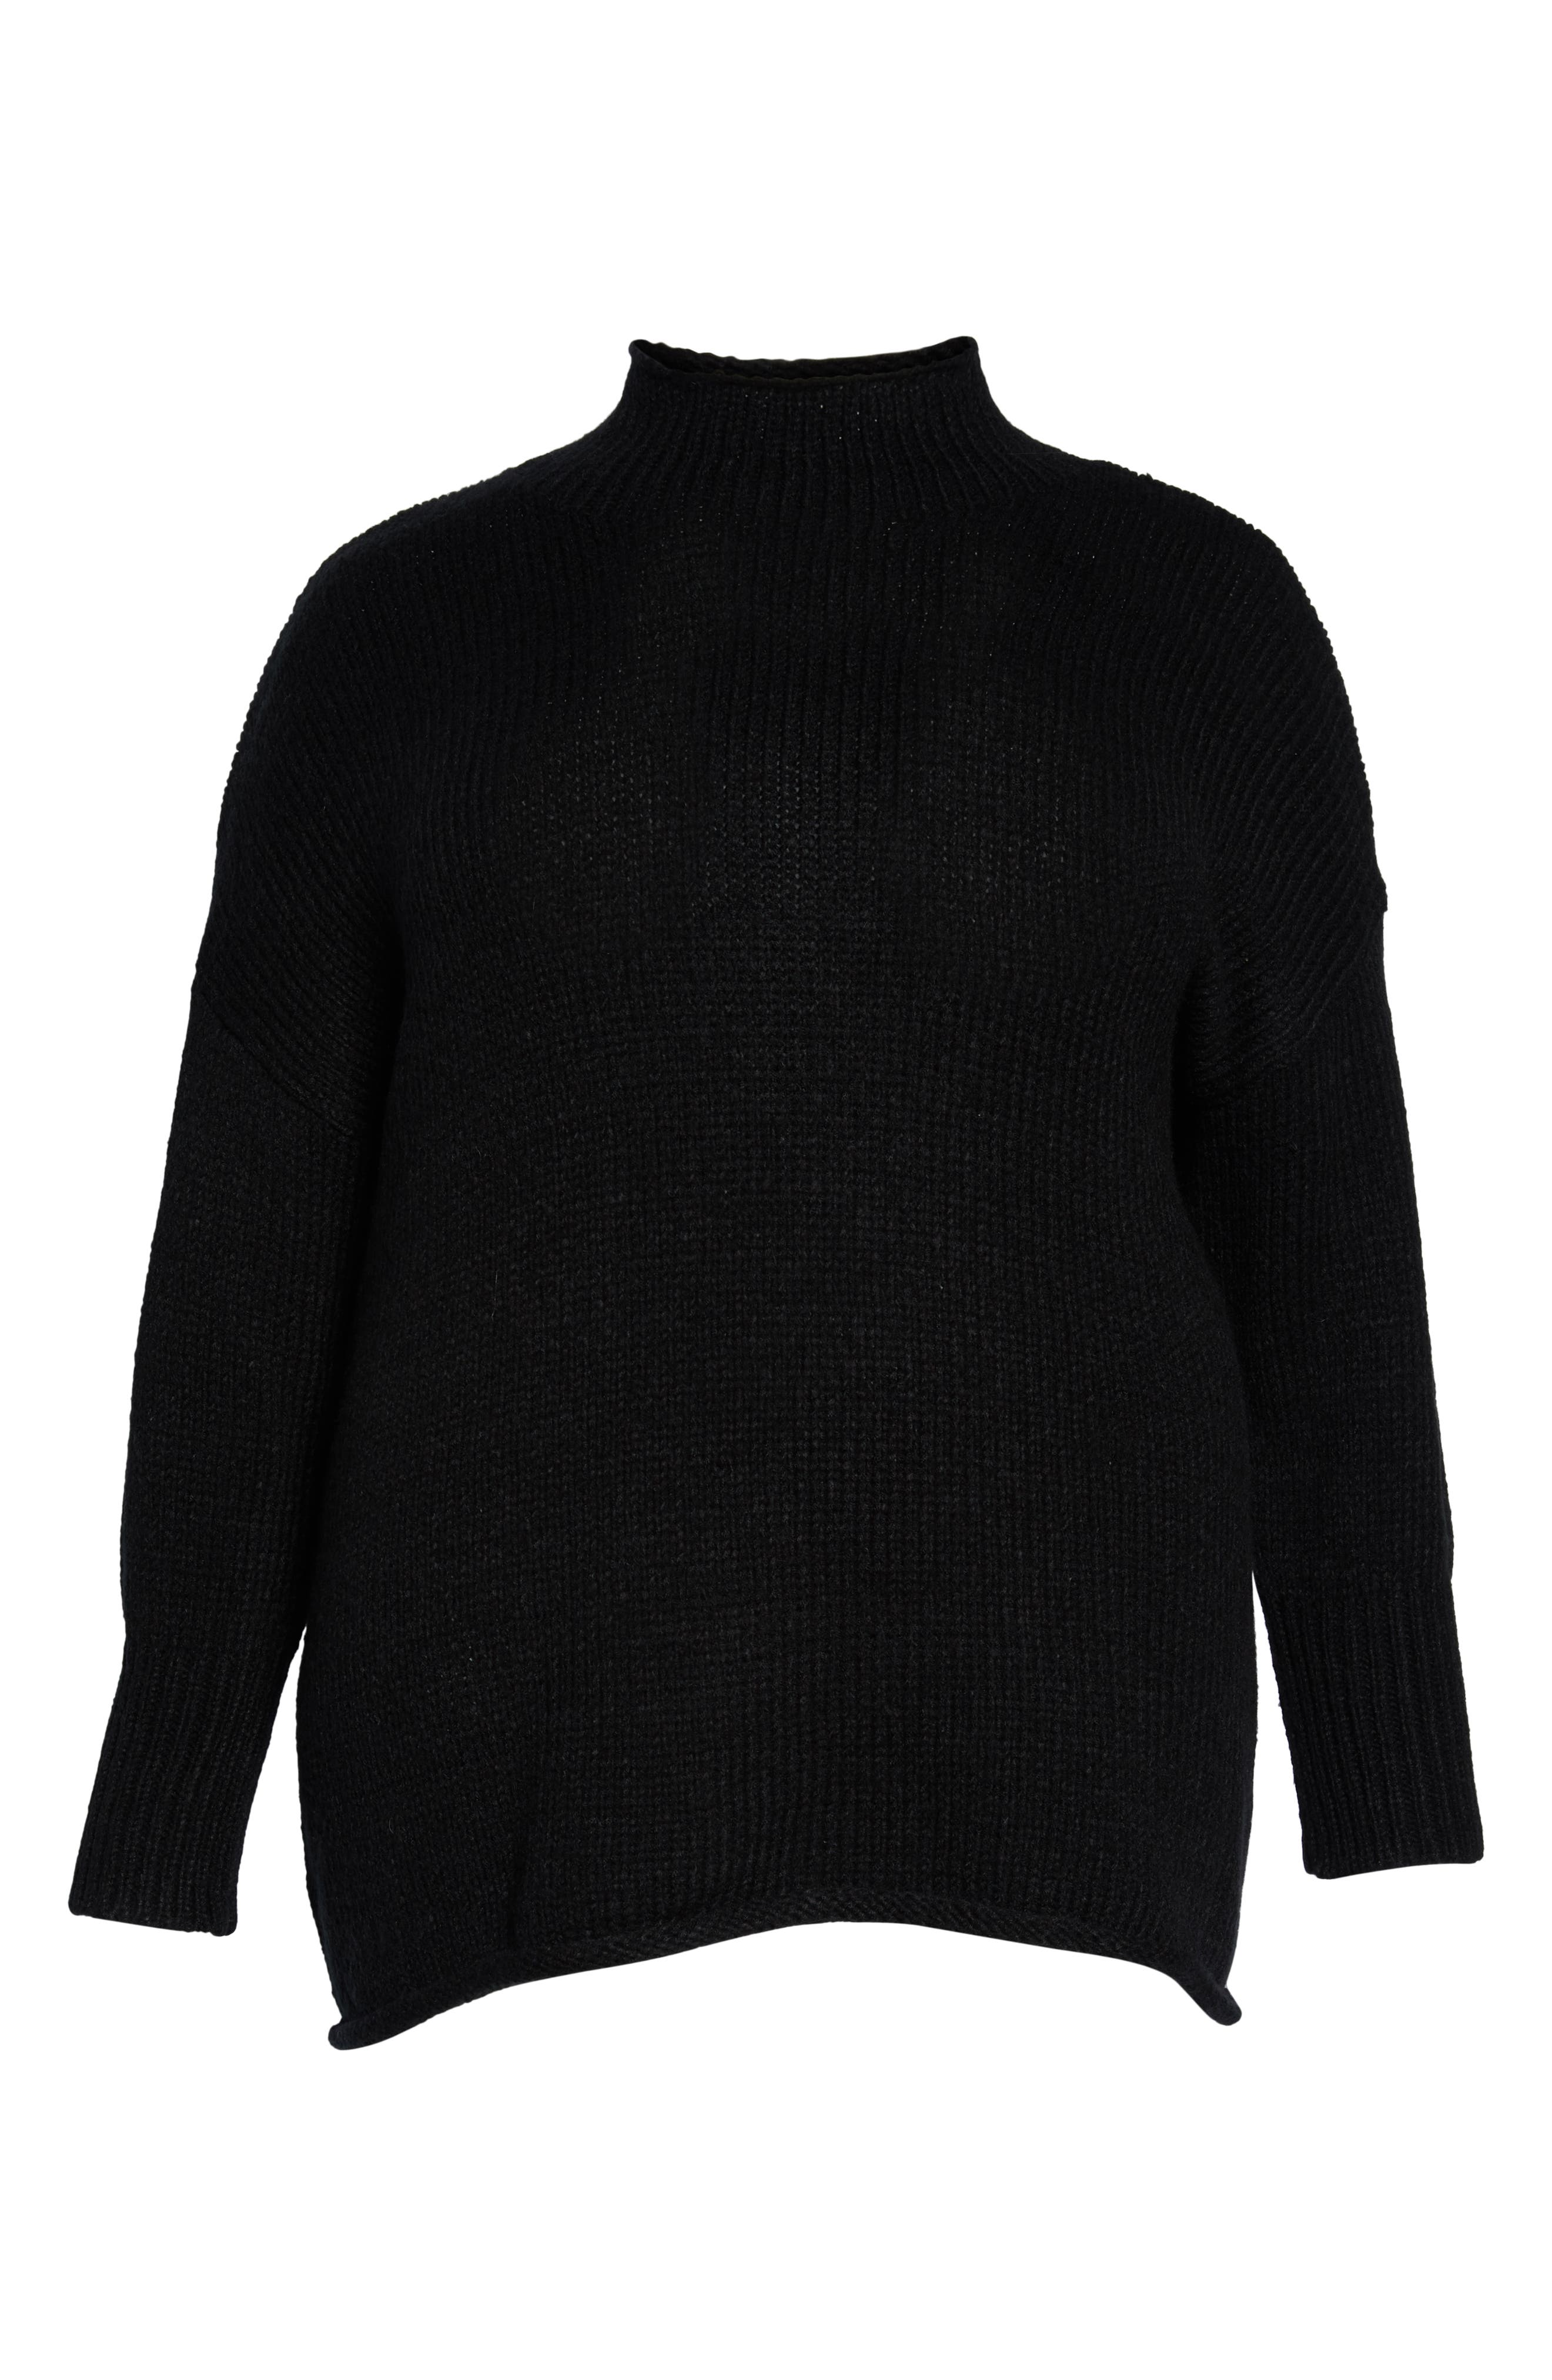 Supersized Curl Up Sweater,                             Alternate thumbnail 6, color,                             001